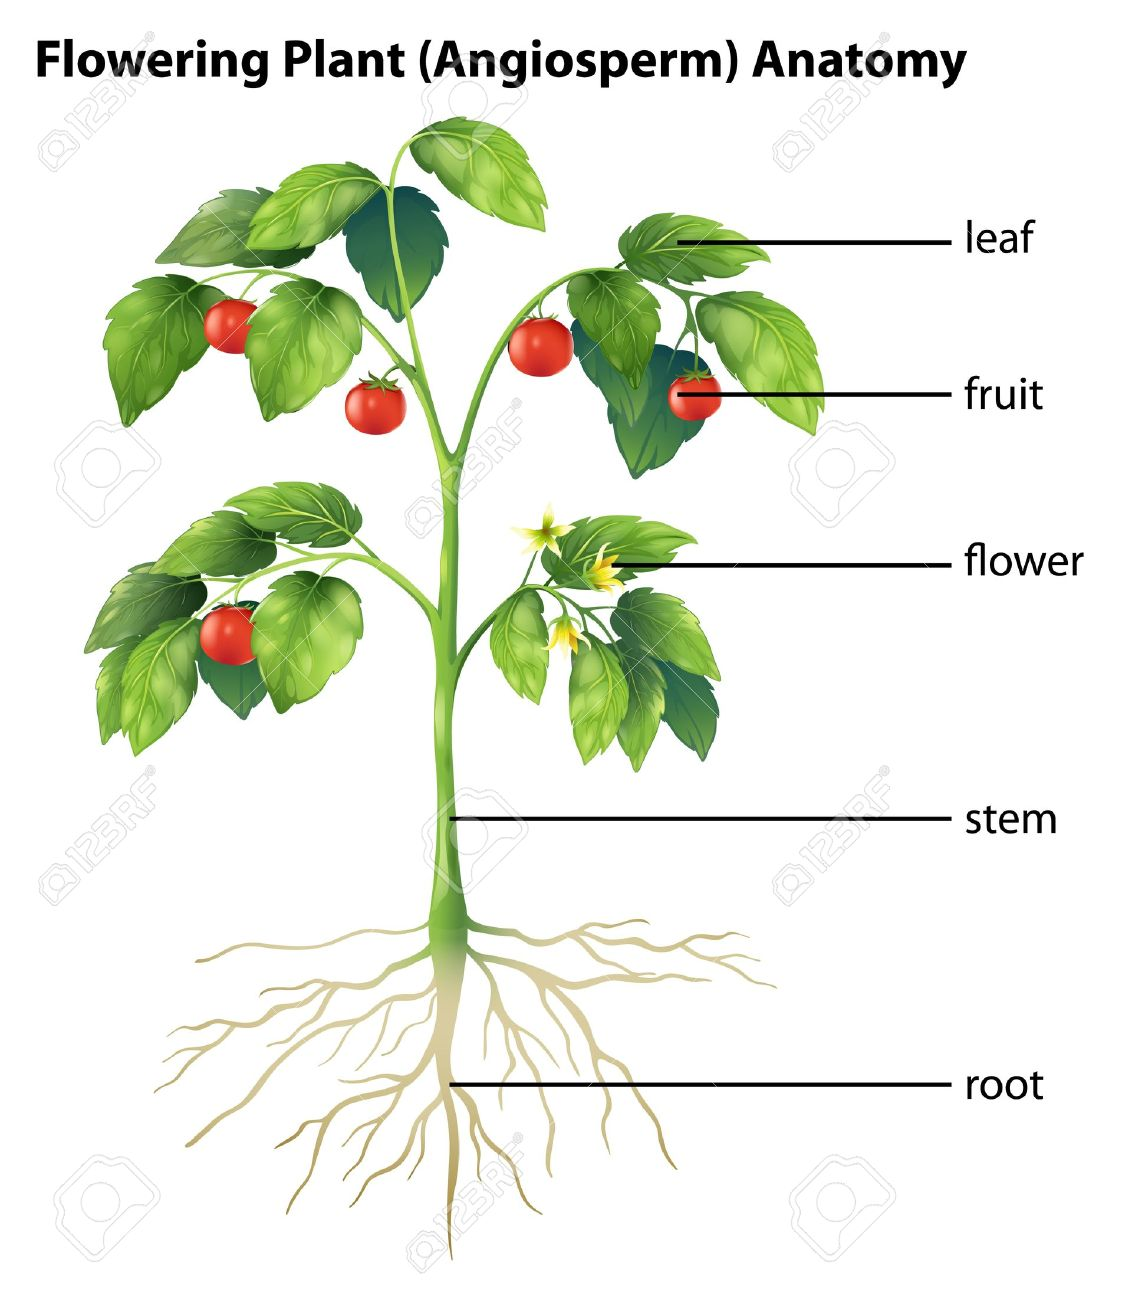 Illustration showing the parts of a tomato plant royalty free illustration showing the parts of a tomato plant stock vector 16988202 ccuart Image collections